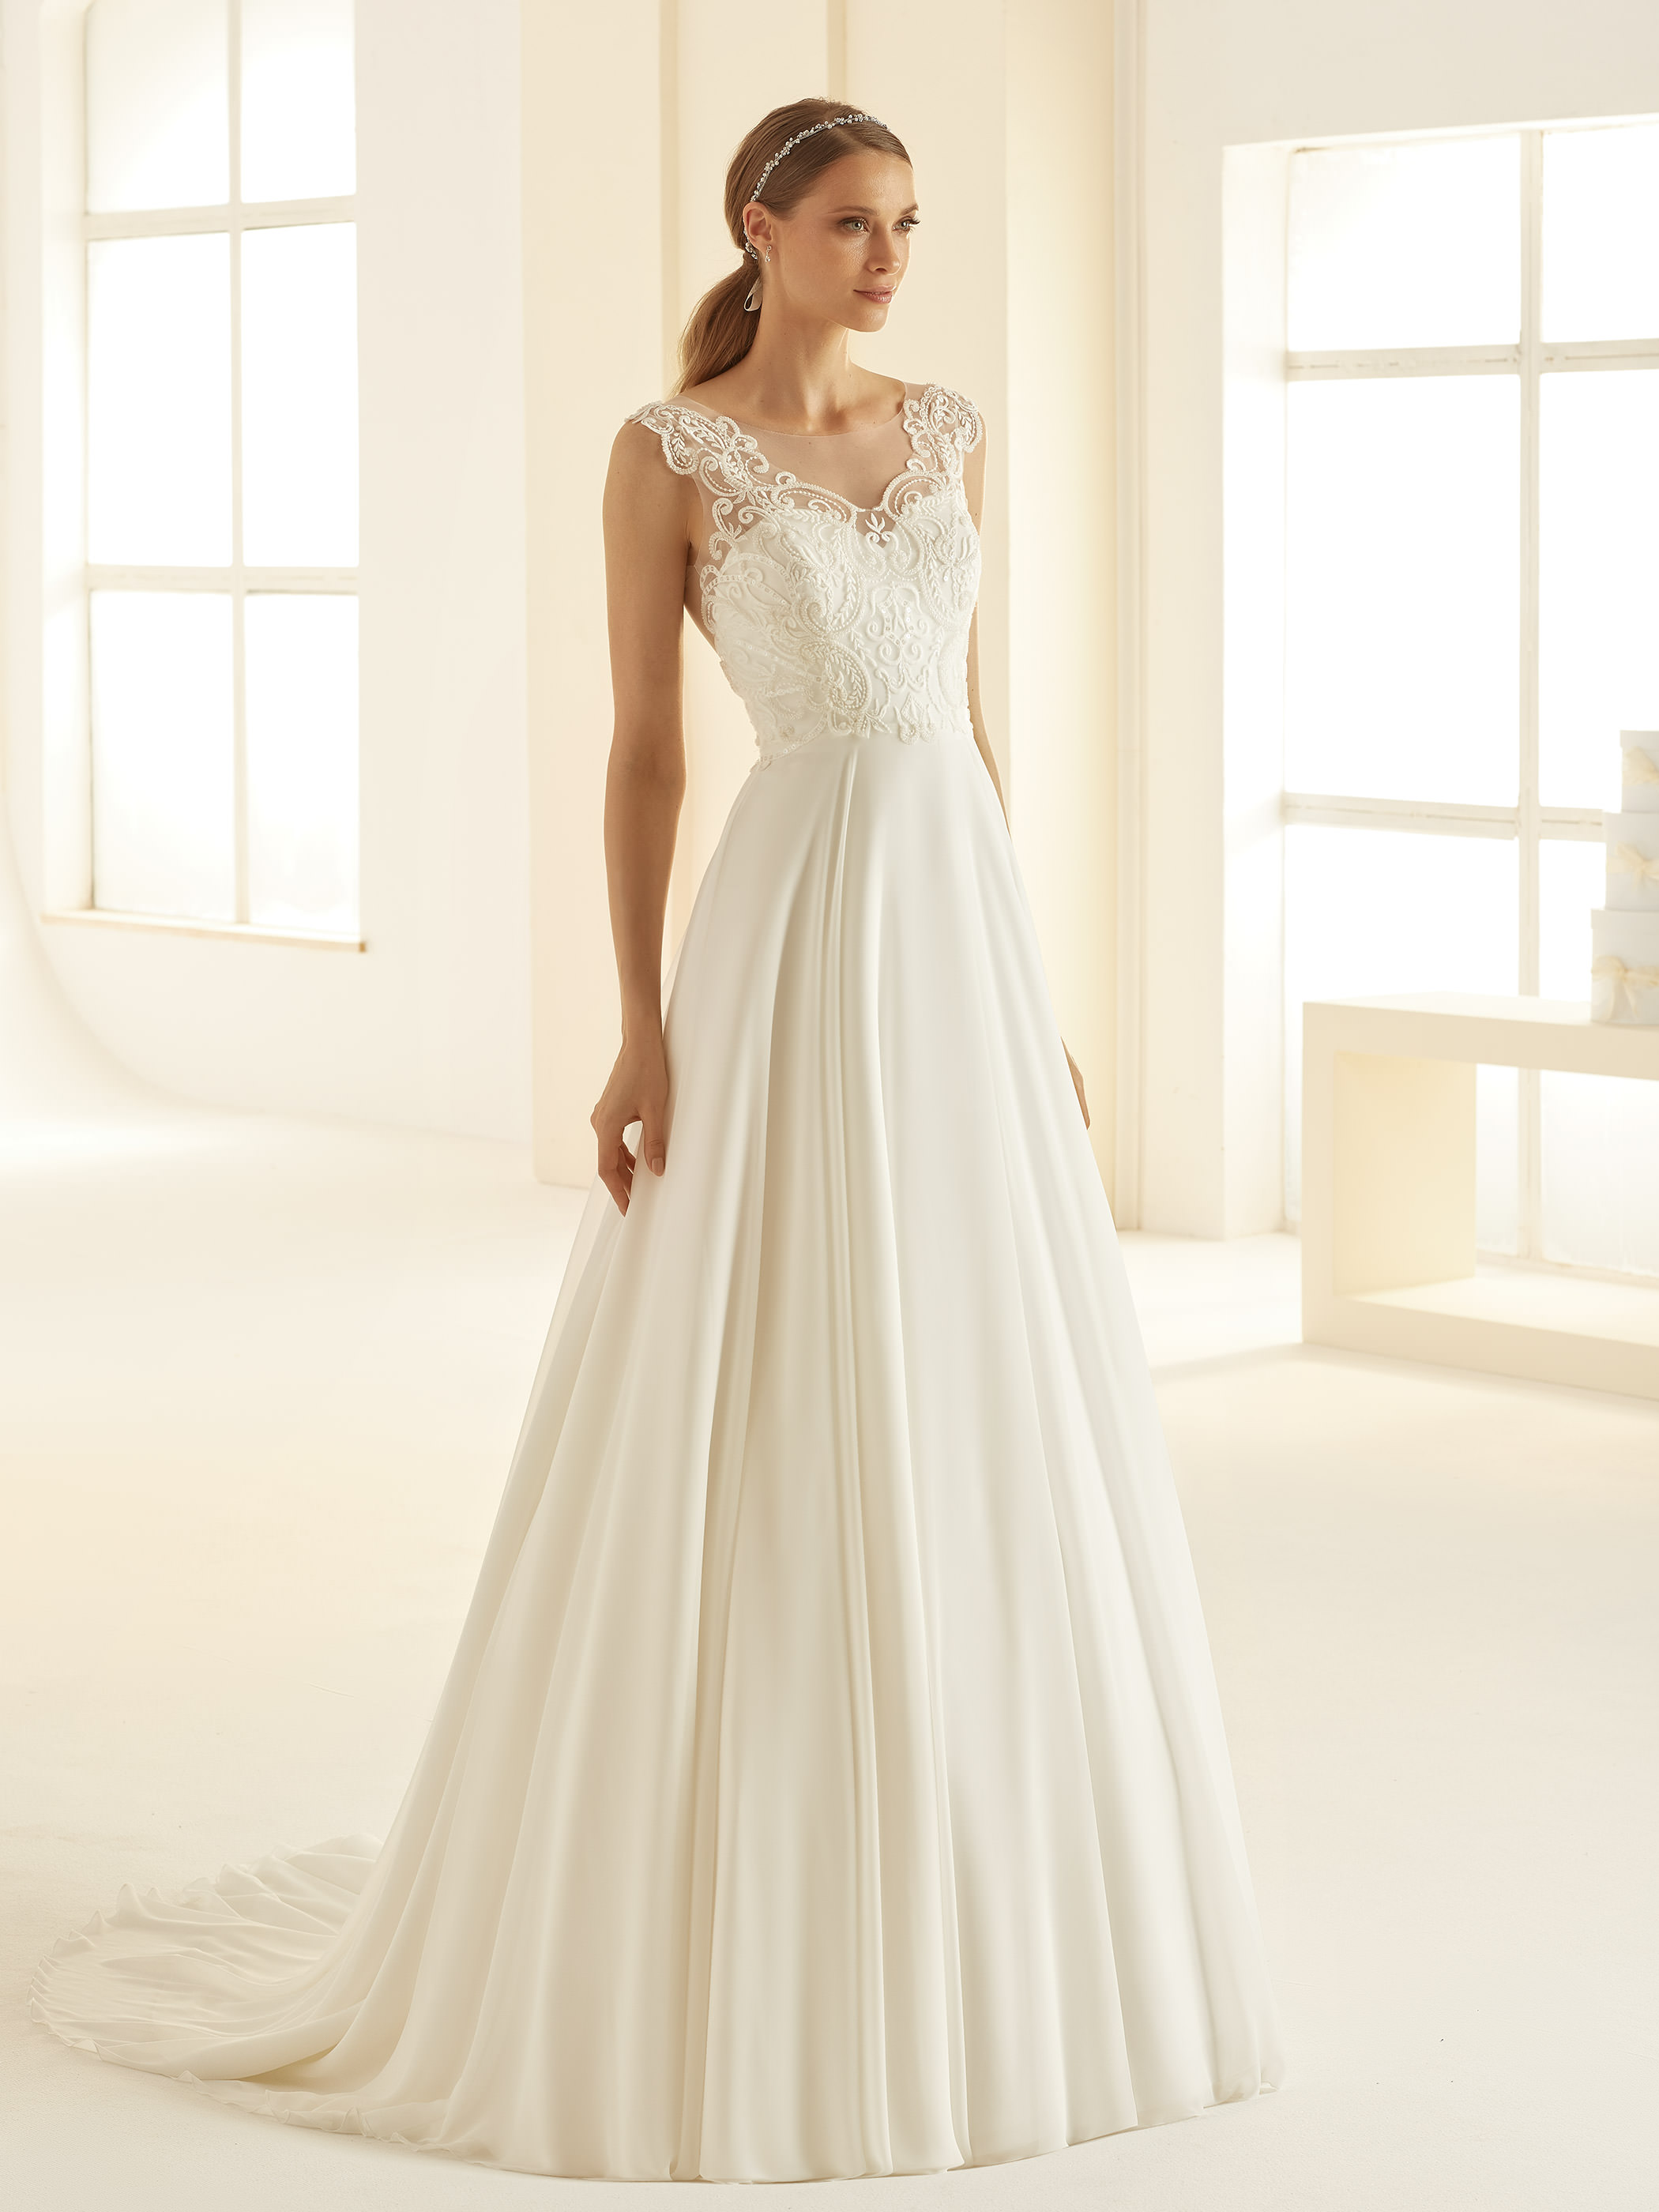 PANDORA_ivory-Bianco-Evento-bridal-dress-(1)